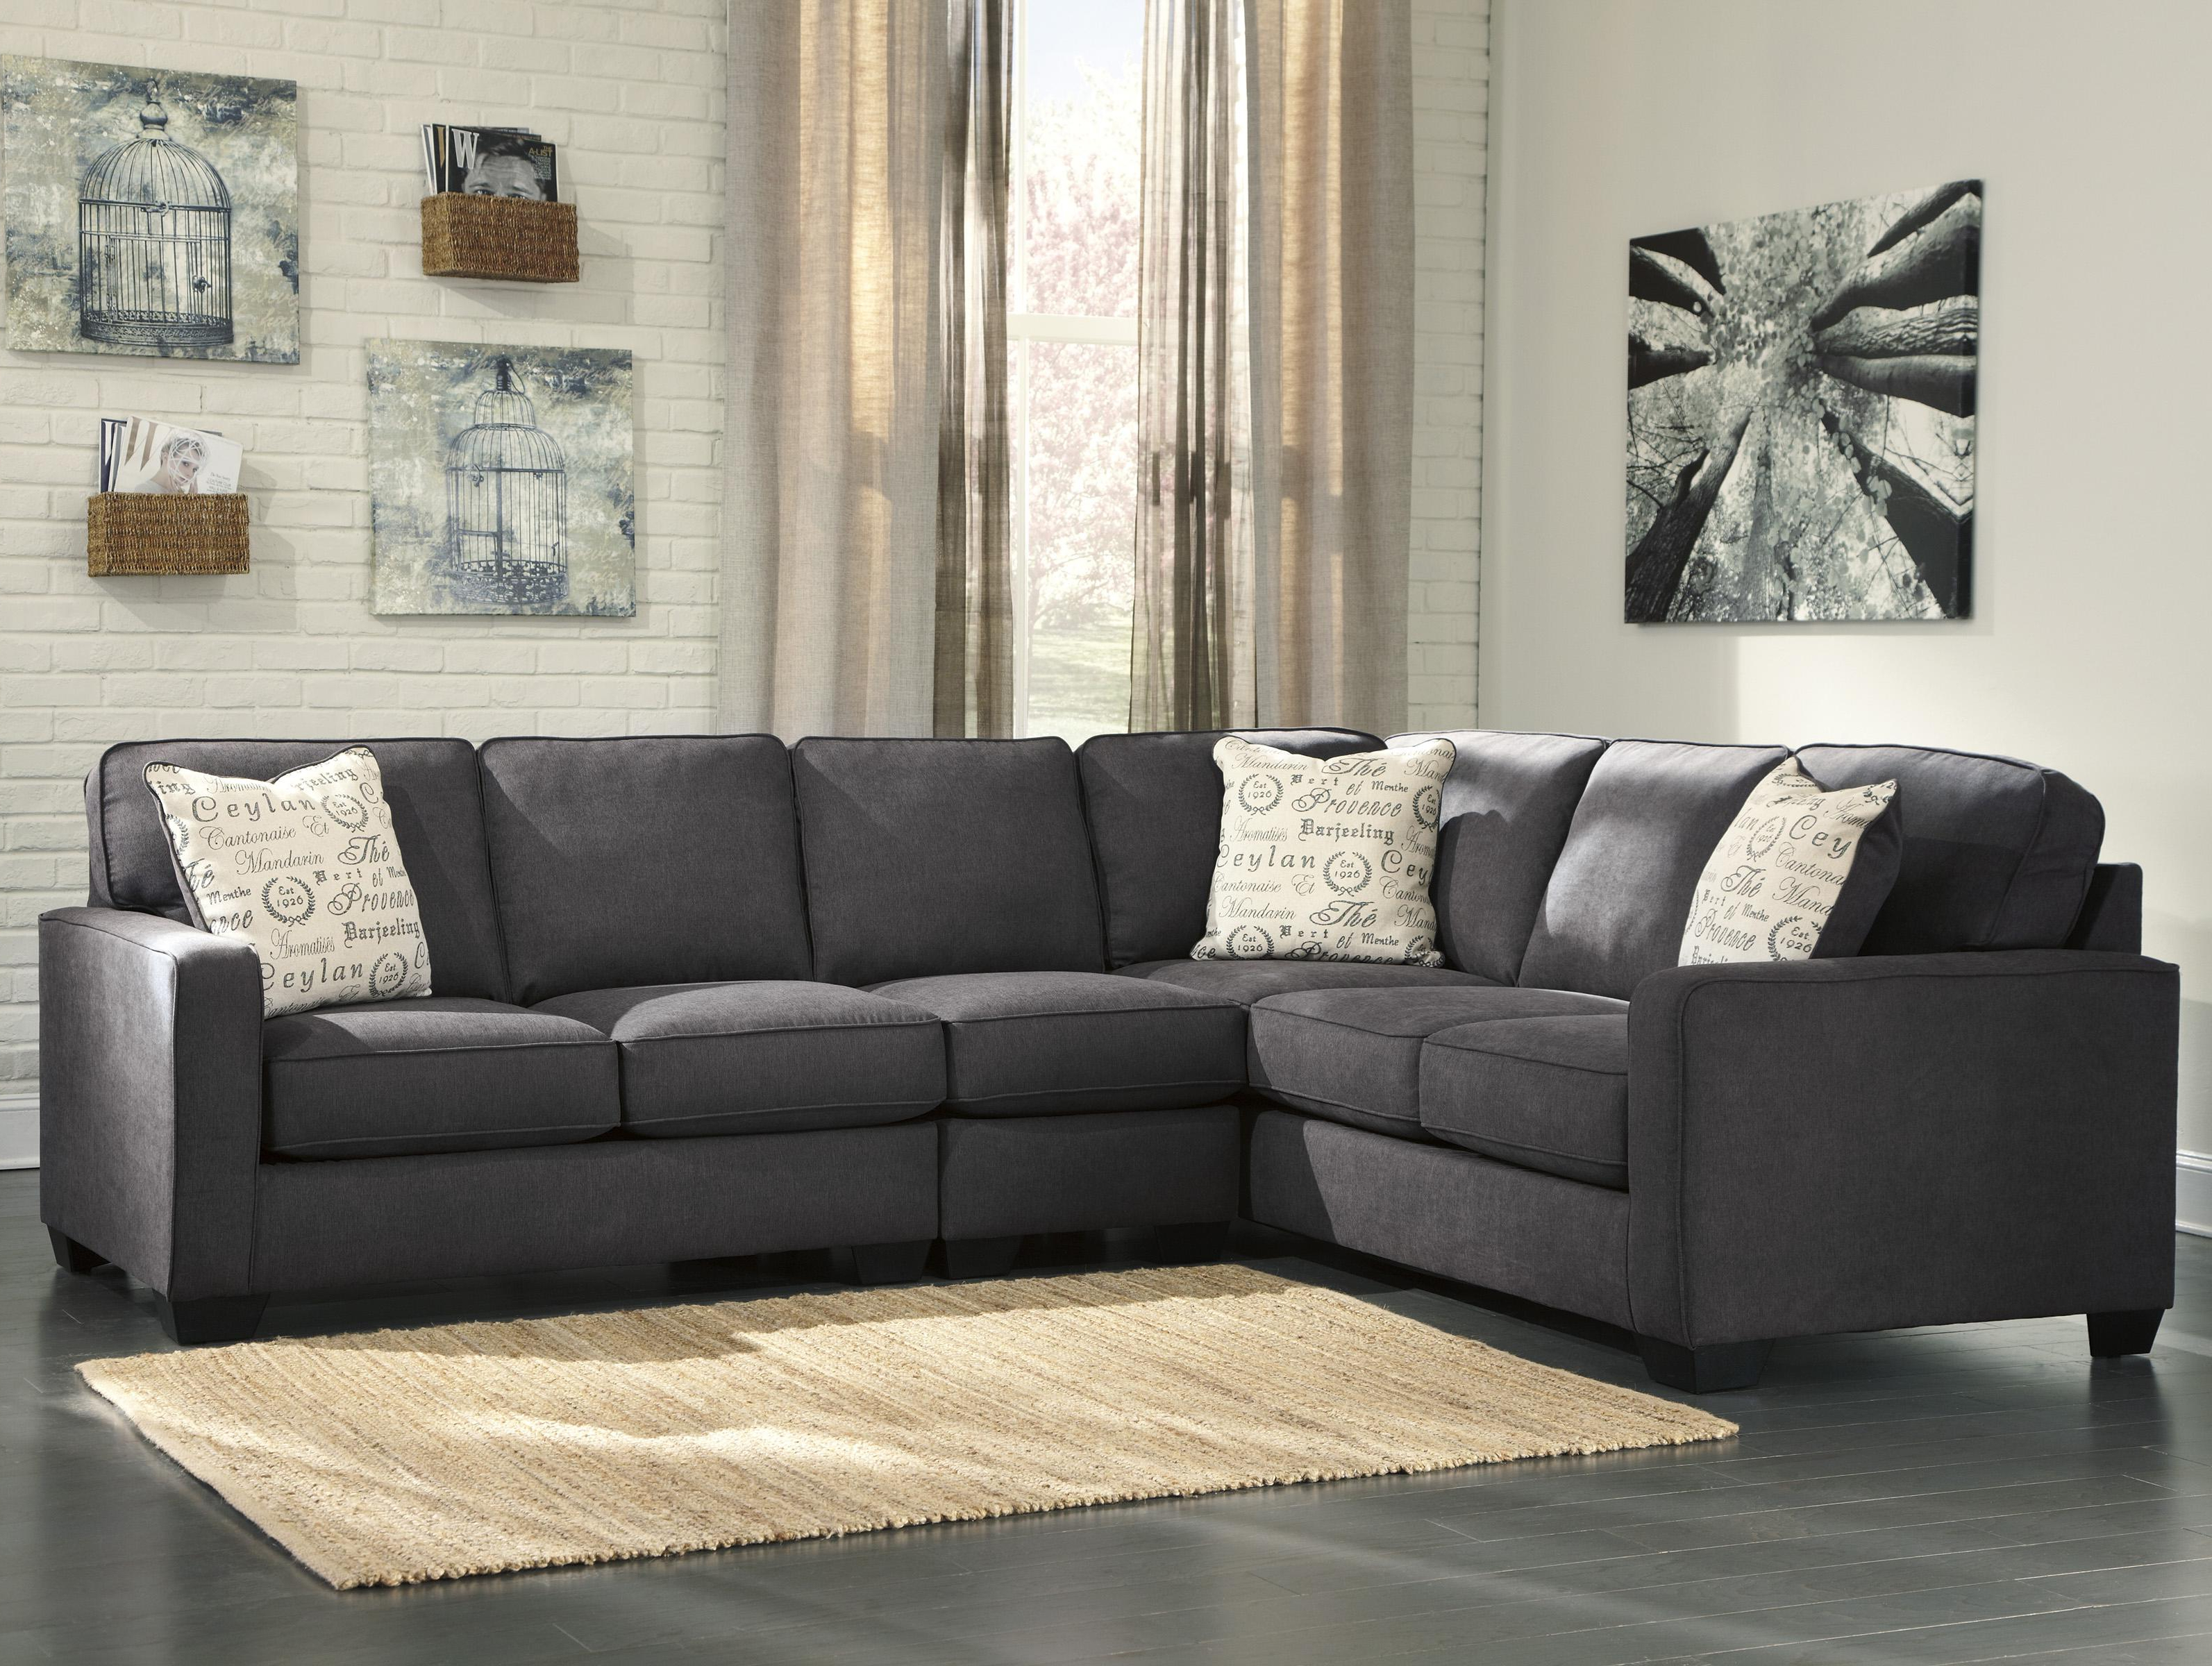 Sierra Foam Ii 3 Piece Sectionals Inside Well Known Signature Designashley Alenya – Charcoal 3 Piece Sectional With (View 14 of 20)